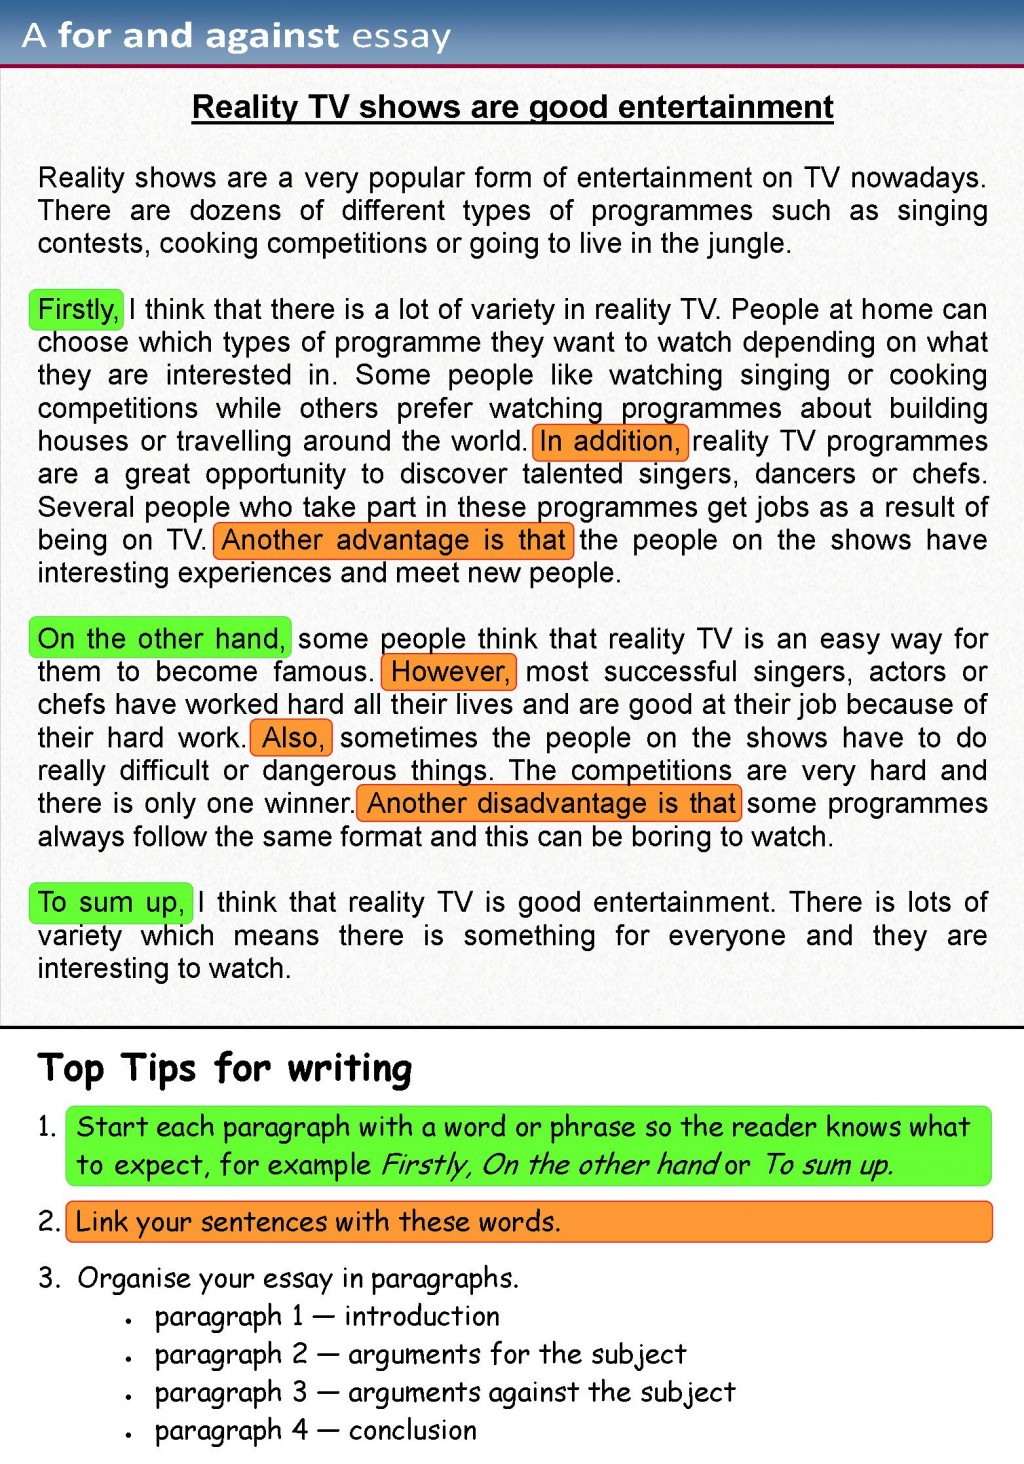 016 For Against Essay 1 Funny Essays Stupendous Examples Composition Topics On School Life Large